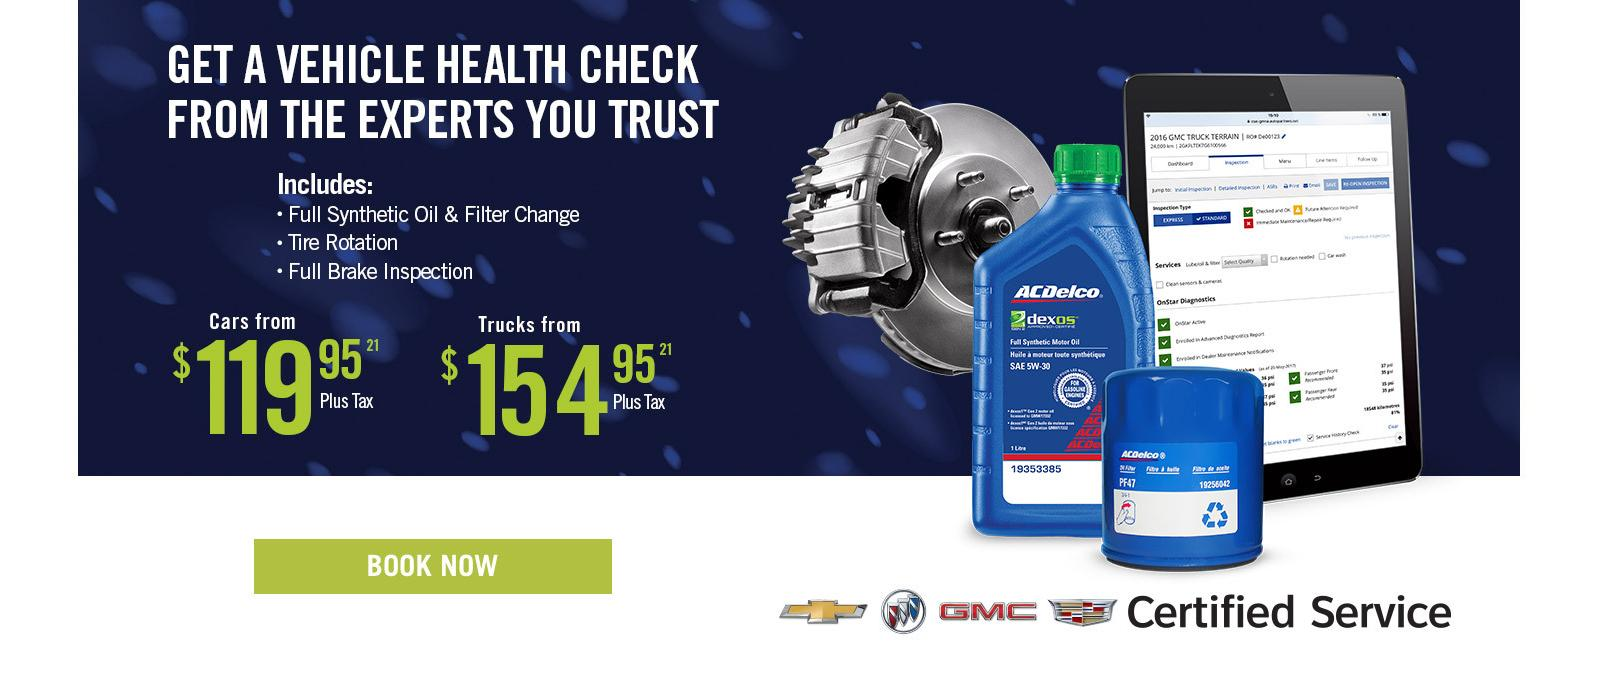 Get a vehicle health check from the experts you trust